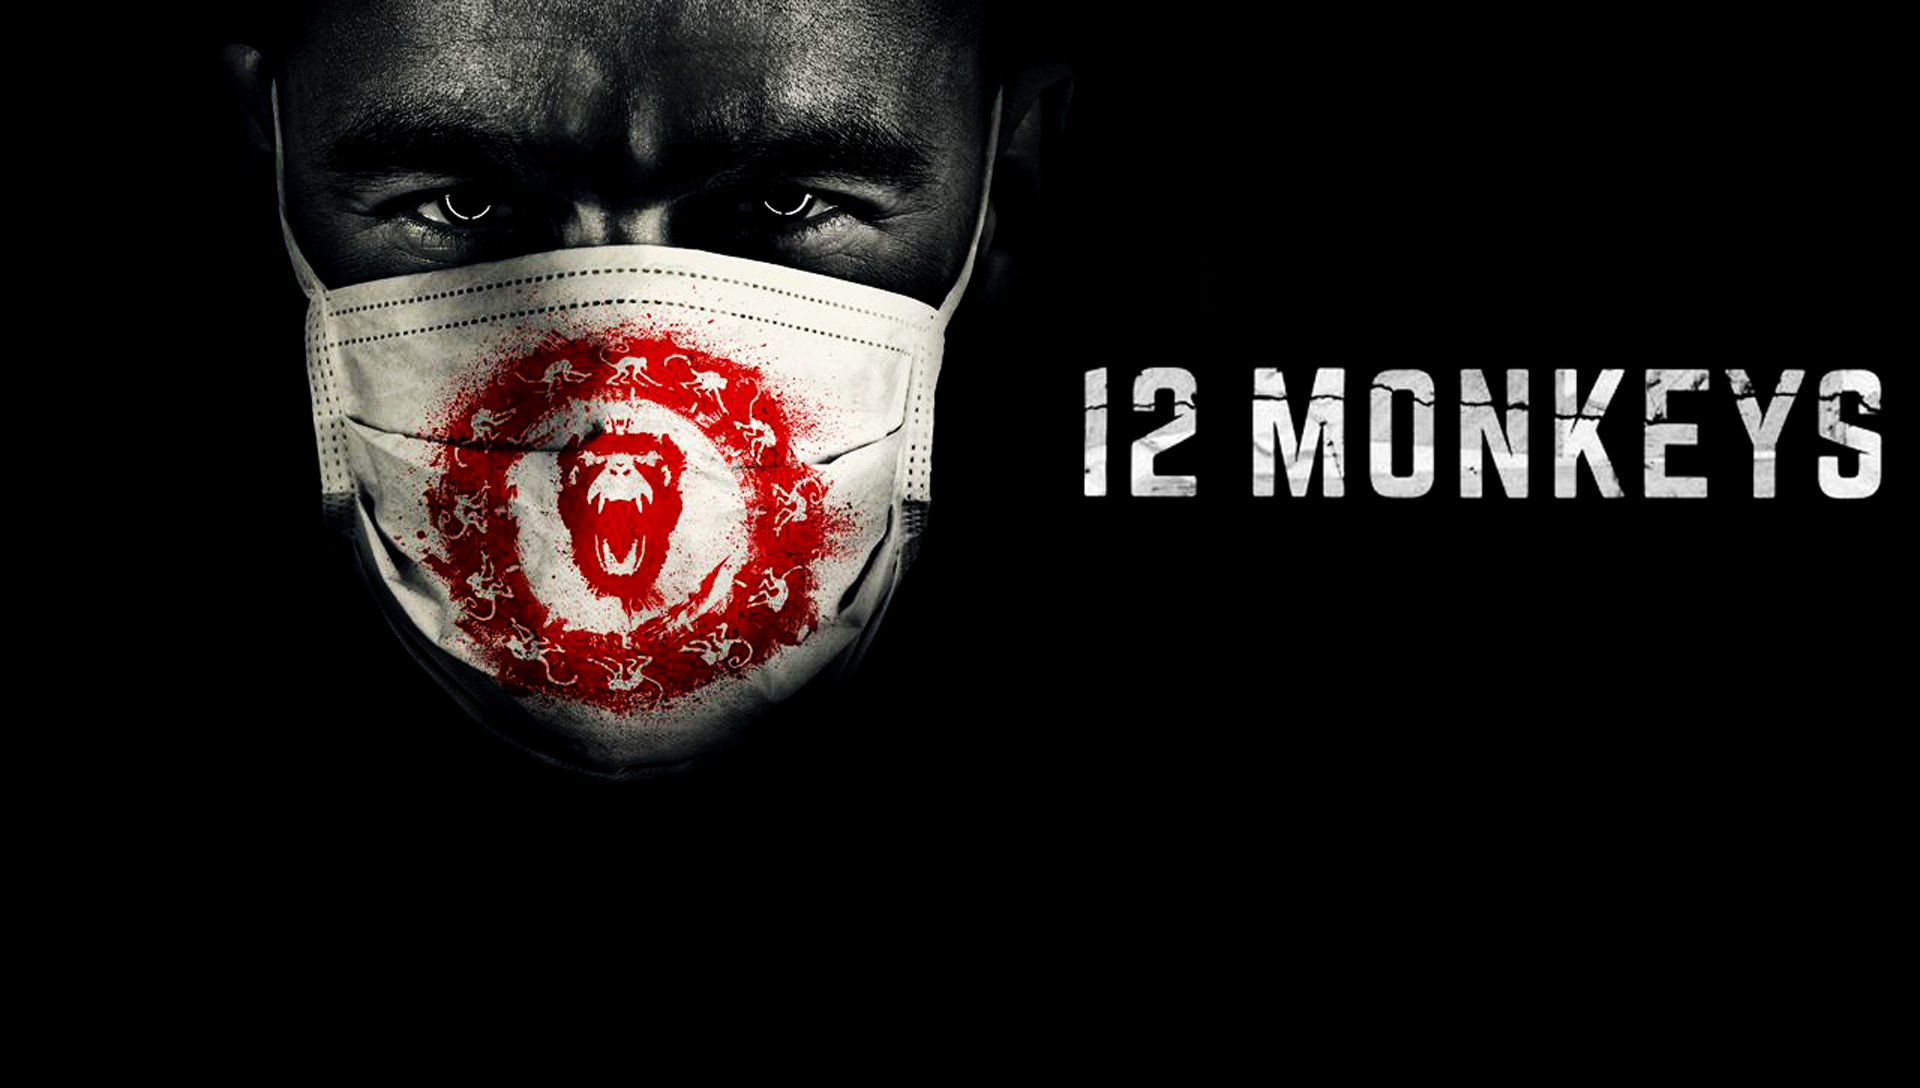 12 Monkeys Tv Series 2015 HD Wallpaper